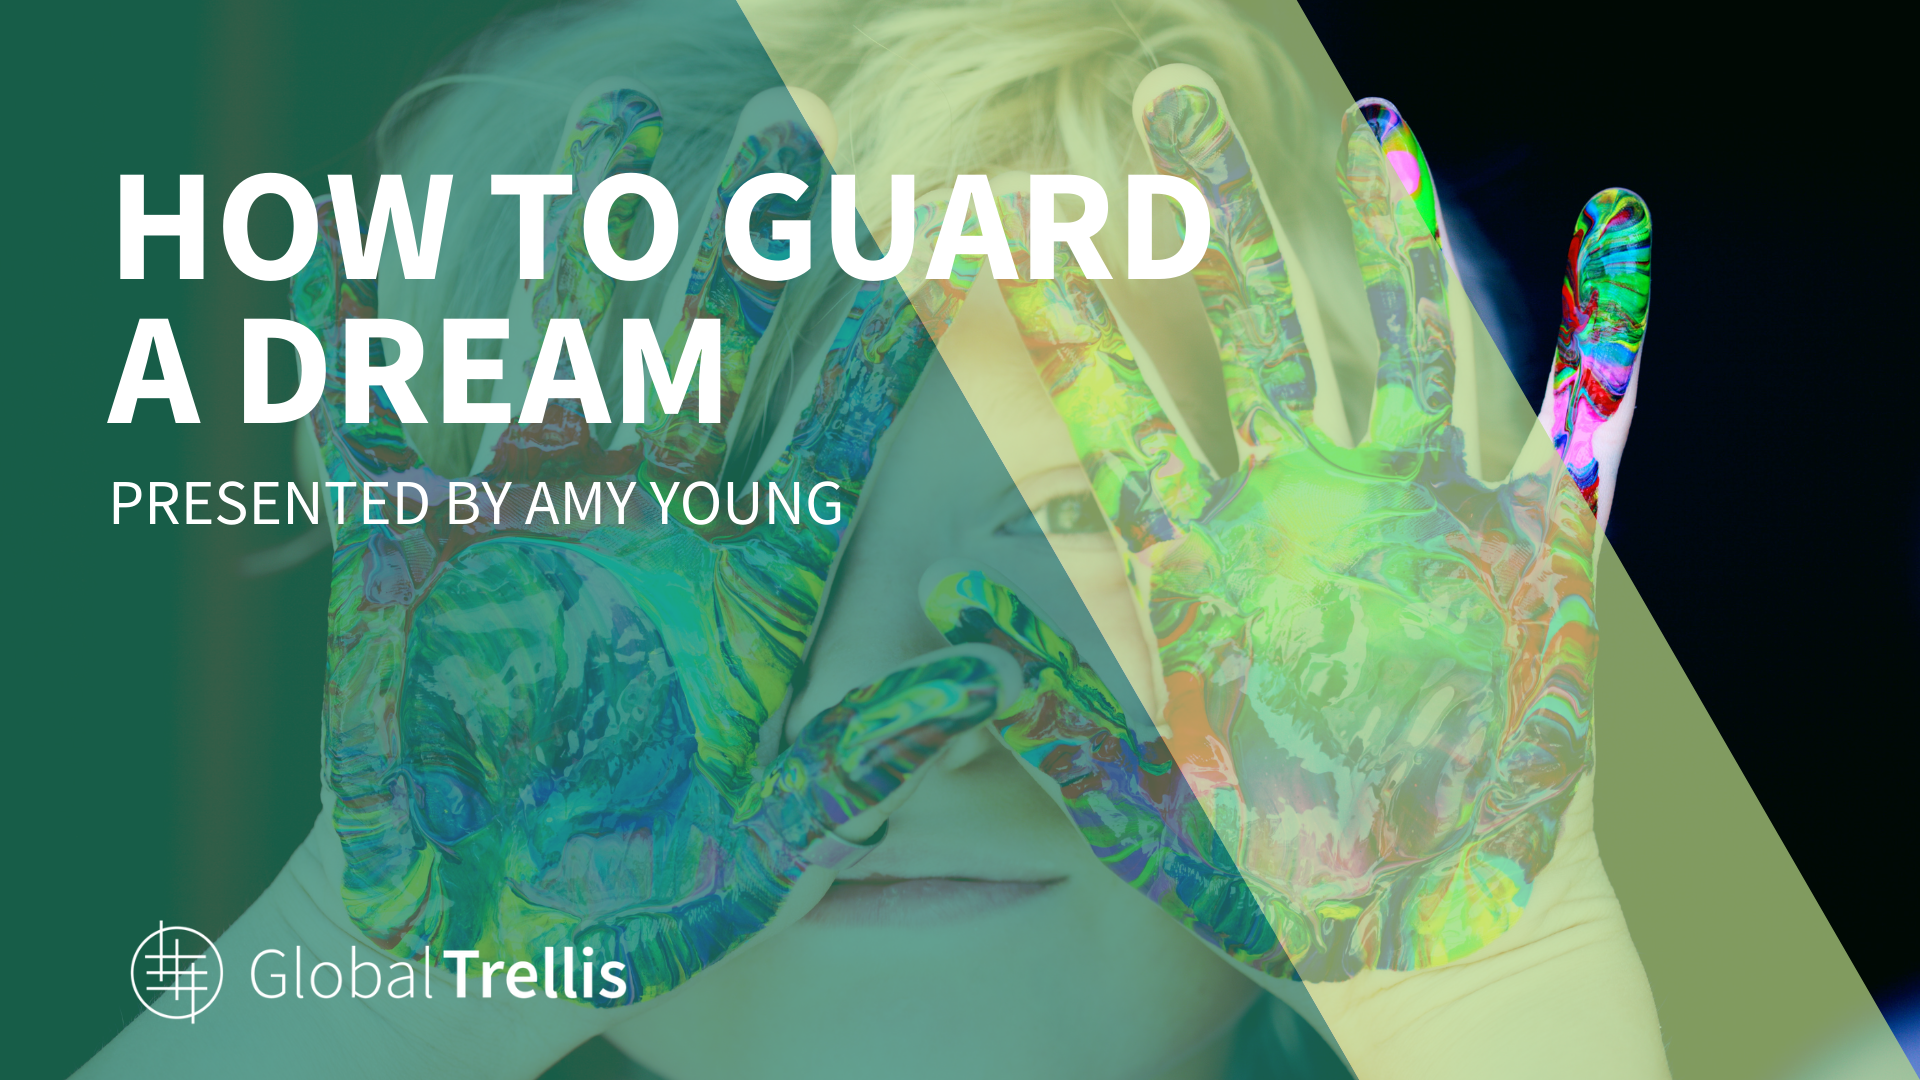 How to guard a dream